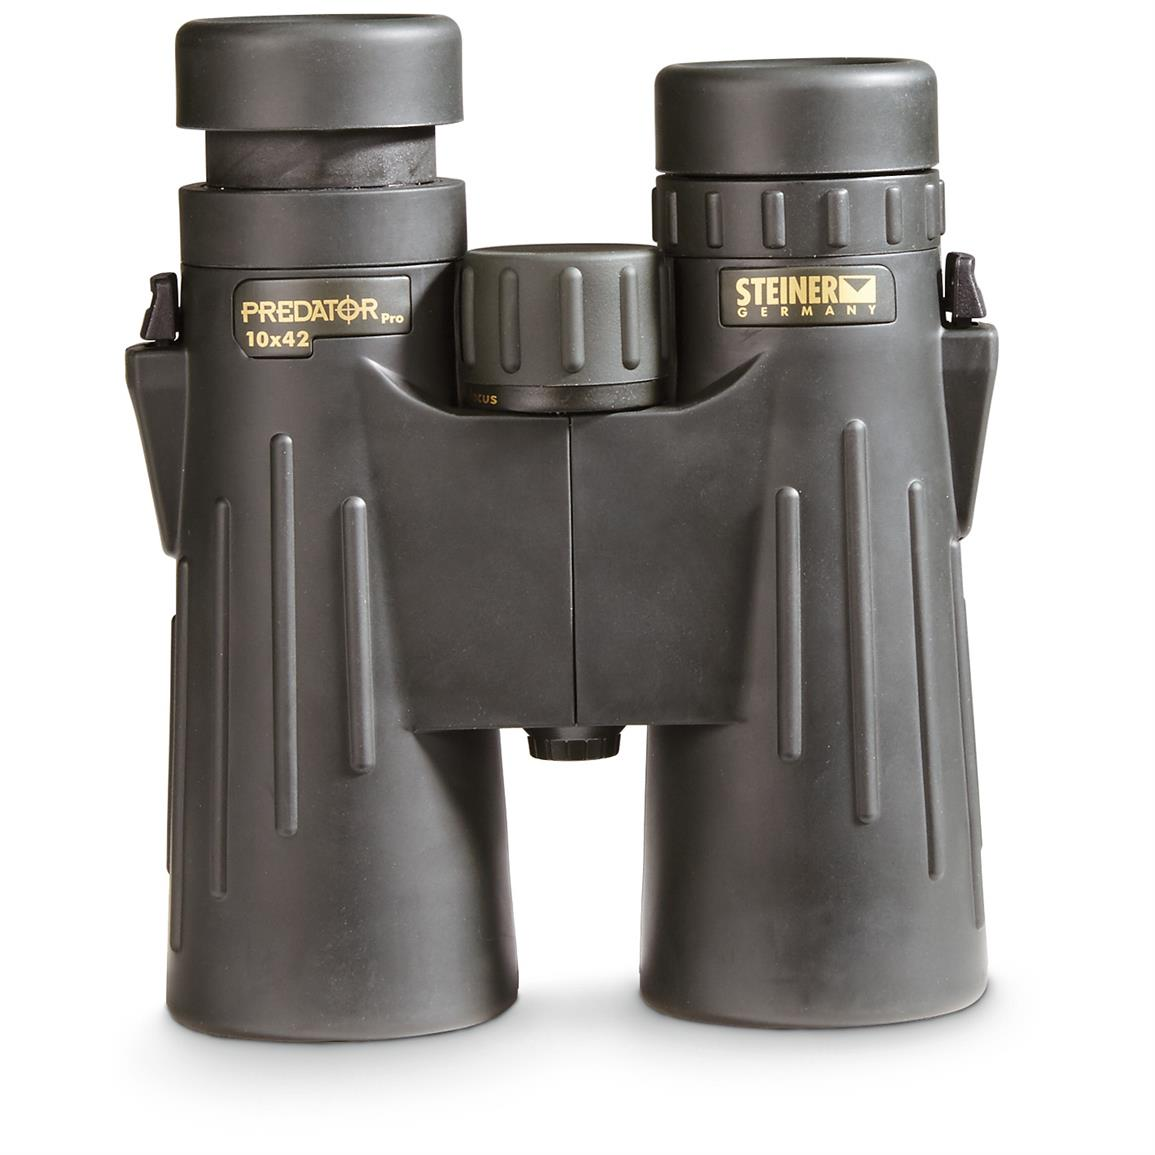 Rubber armored, with fold-down eyecups